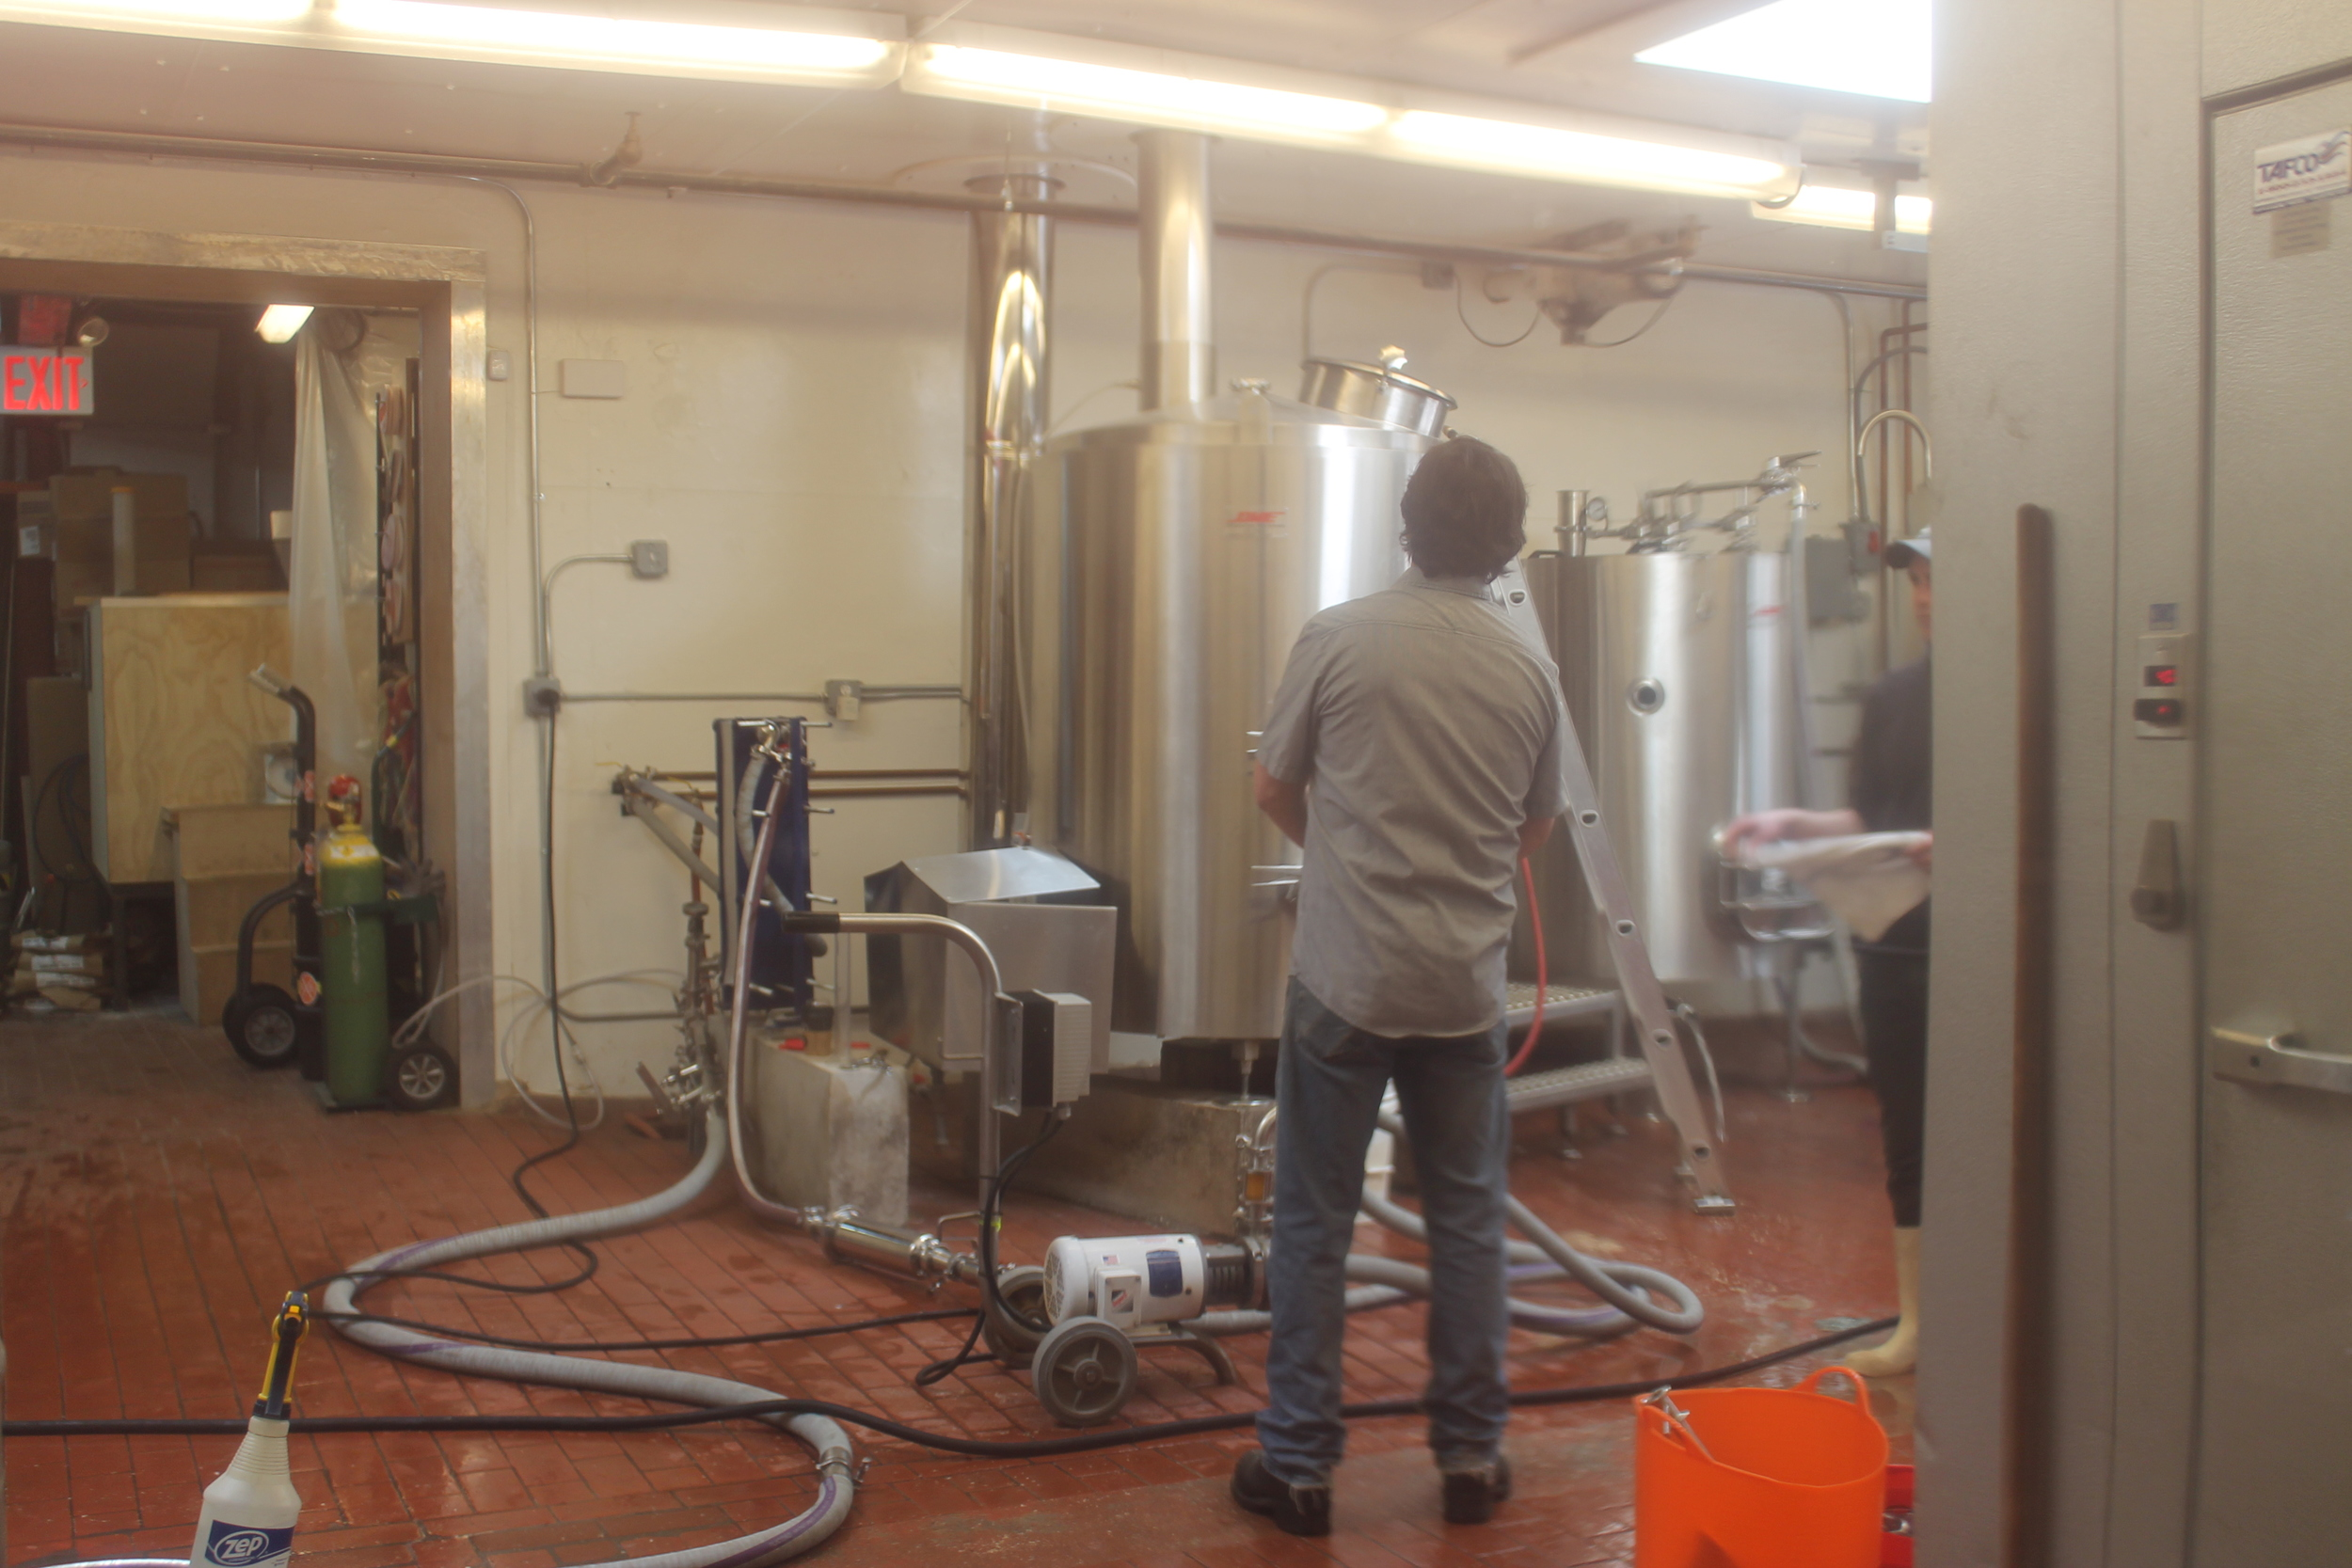 A view of John from the window in the door separating the brewery from the tasting room. Judging from the hoses, we're transferring the beer to the fermenter before pitching the yeast.